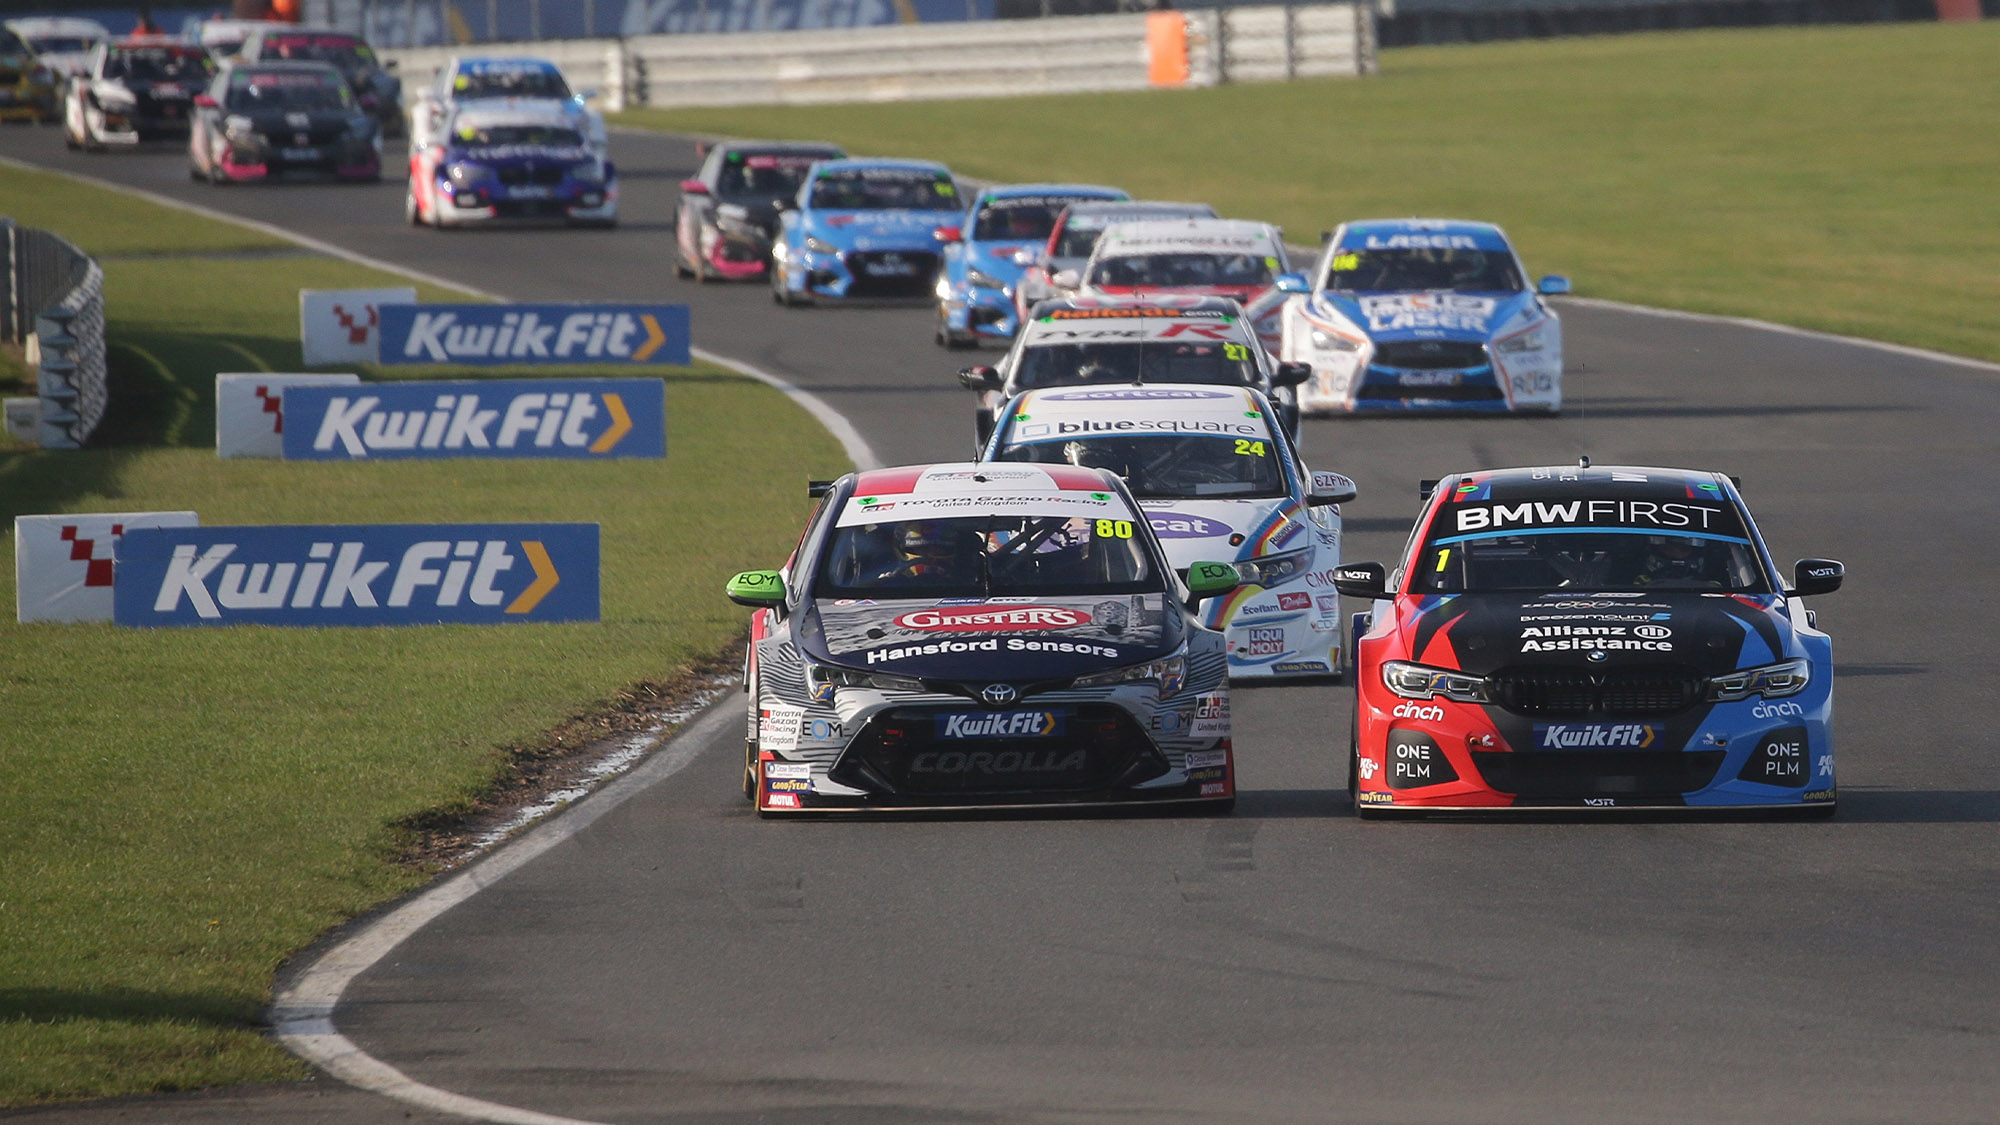 Colin Turkington defends from Tom Ingram at Snetterton in the 2020 BTCC round